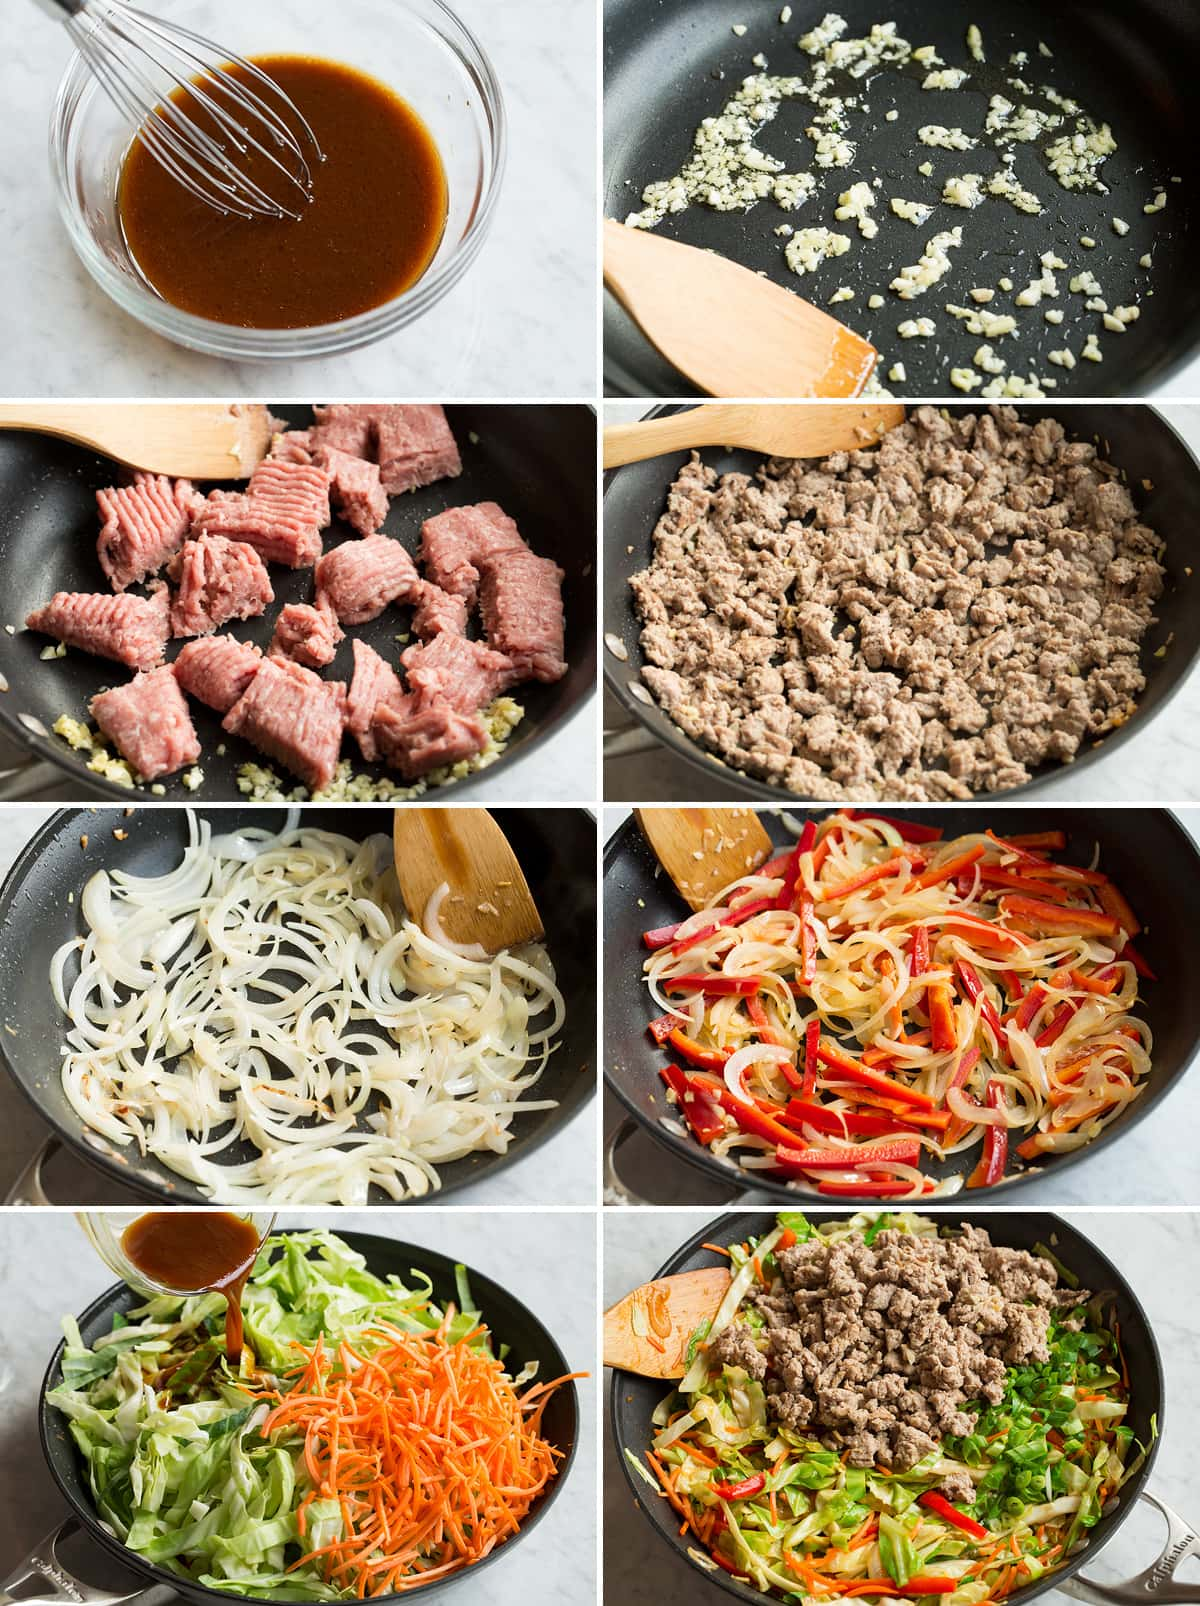 8 steps showing how to make egg roll in a bowl sauce and mixture in a skillet.